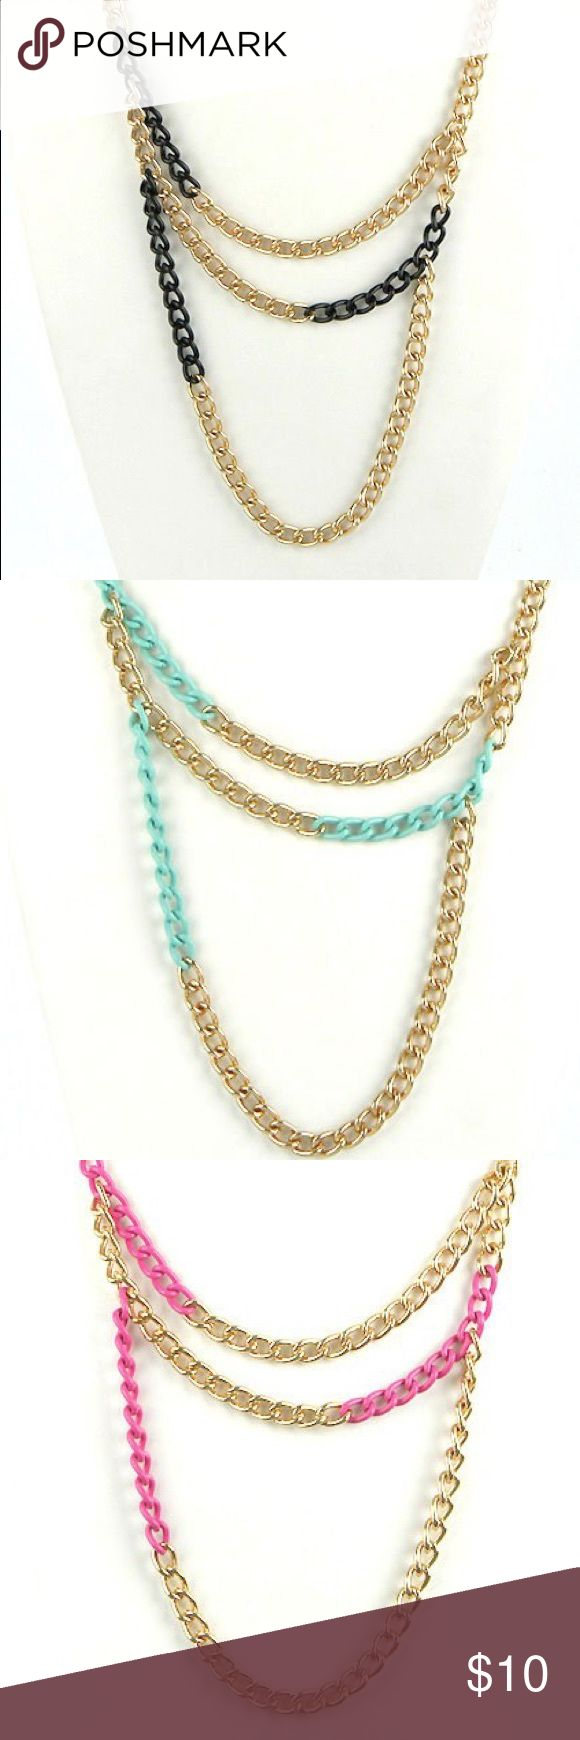 Women's Gold Chain Necklace Very cute, thick, gold chain necklace with colorful accents. 19 inches and comes in black, mint, or pink. Has matching color ball earrings. Never worn, this is leftover from a big sale. Accessories